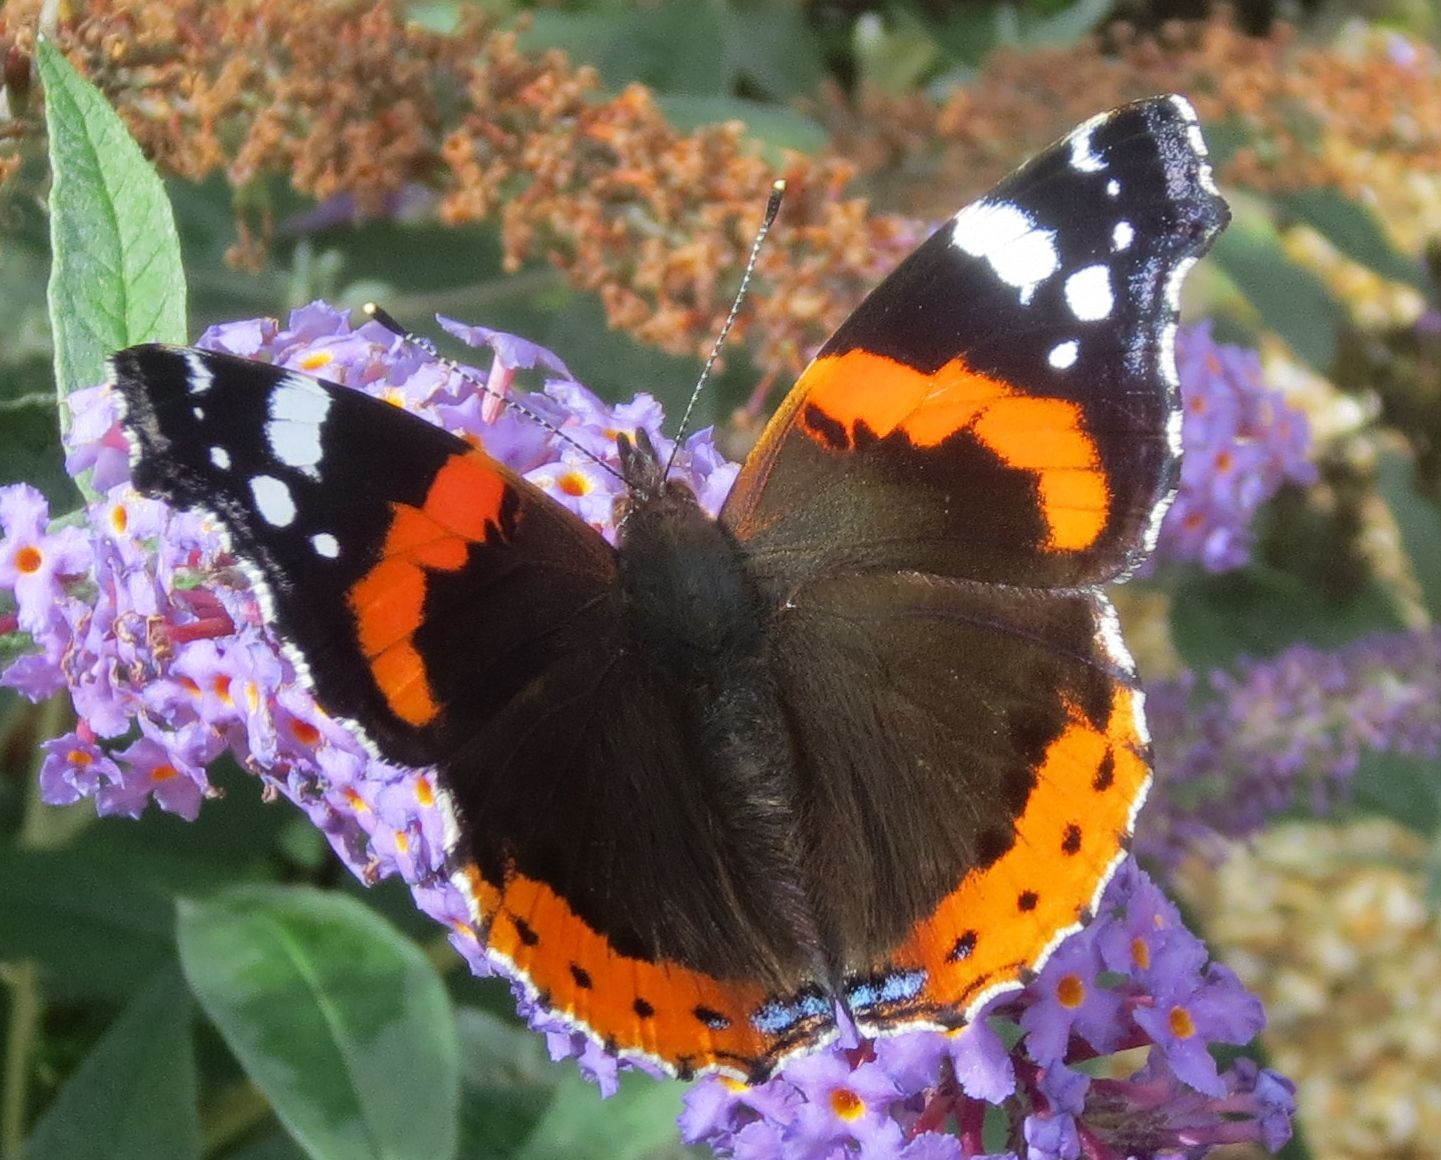 Loads of Red Admirals in the garden for the last few days